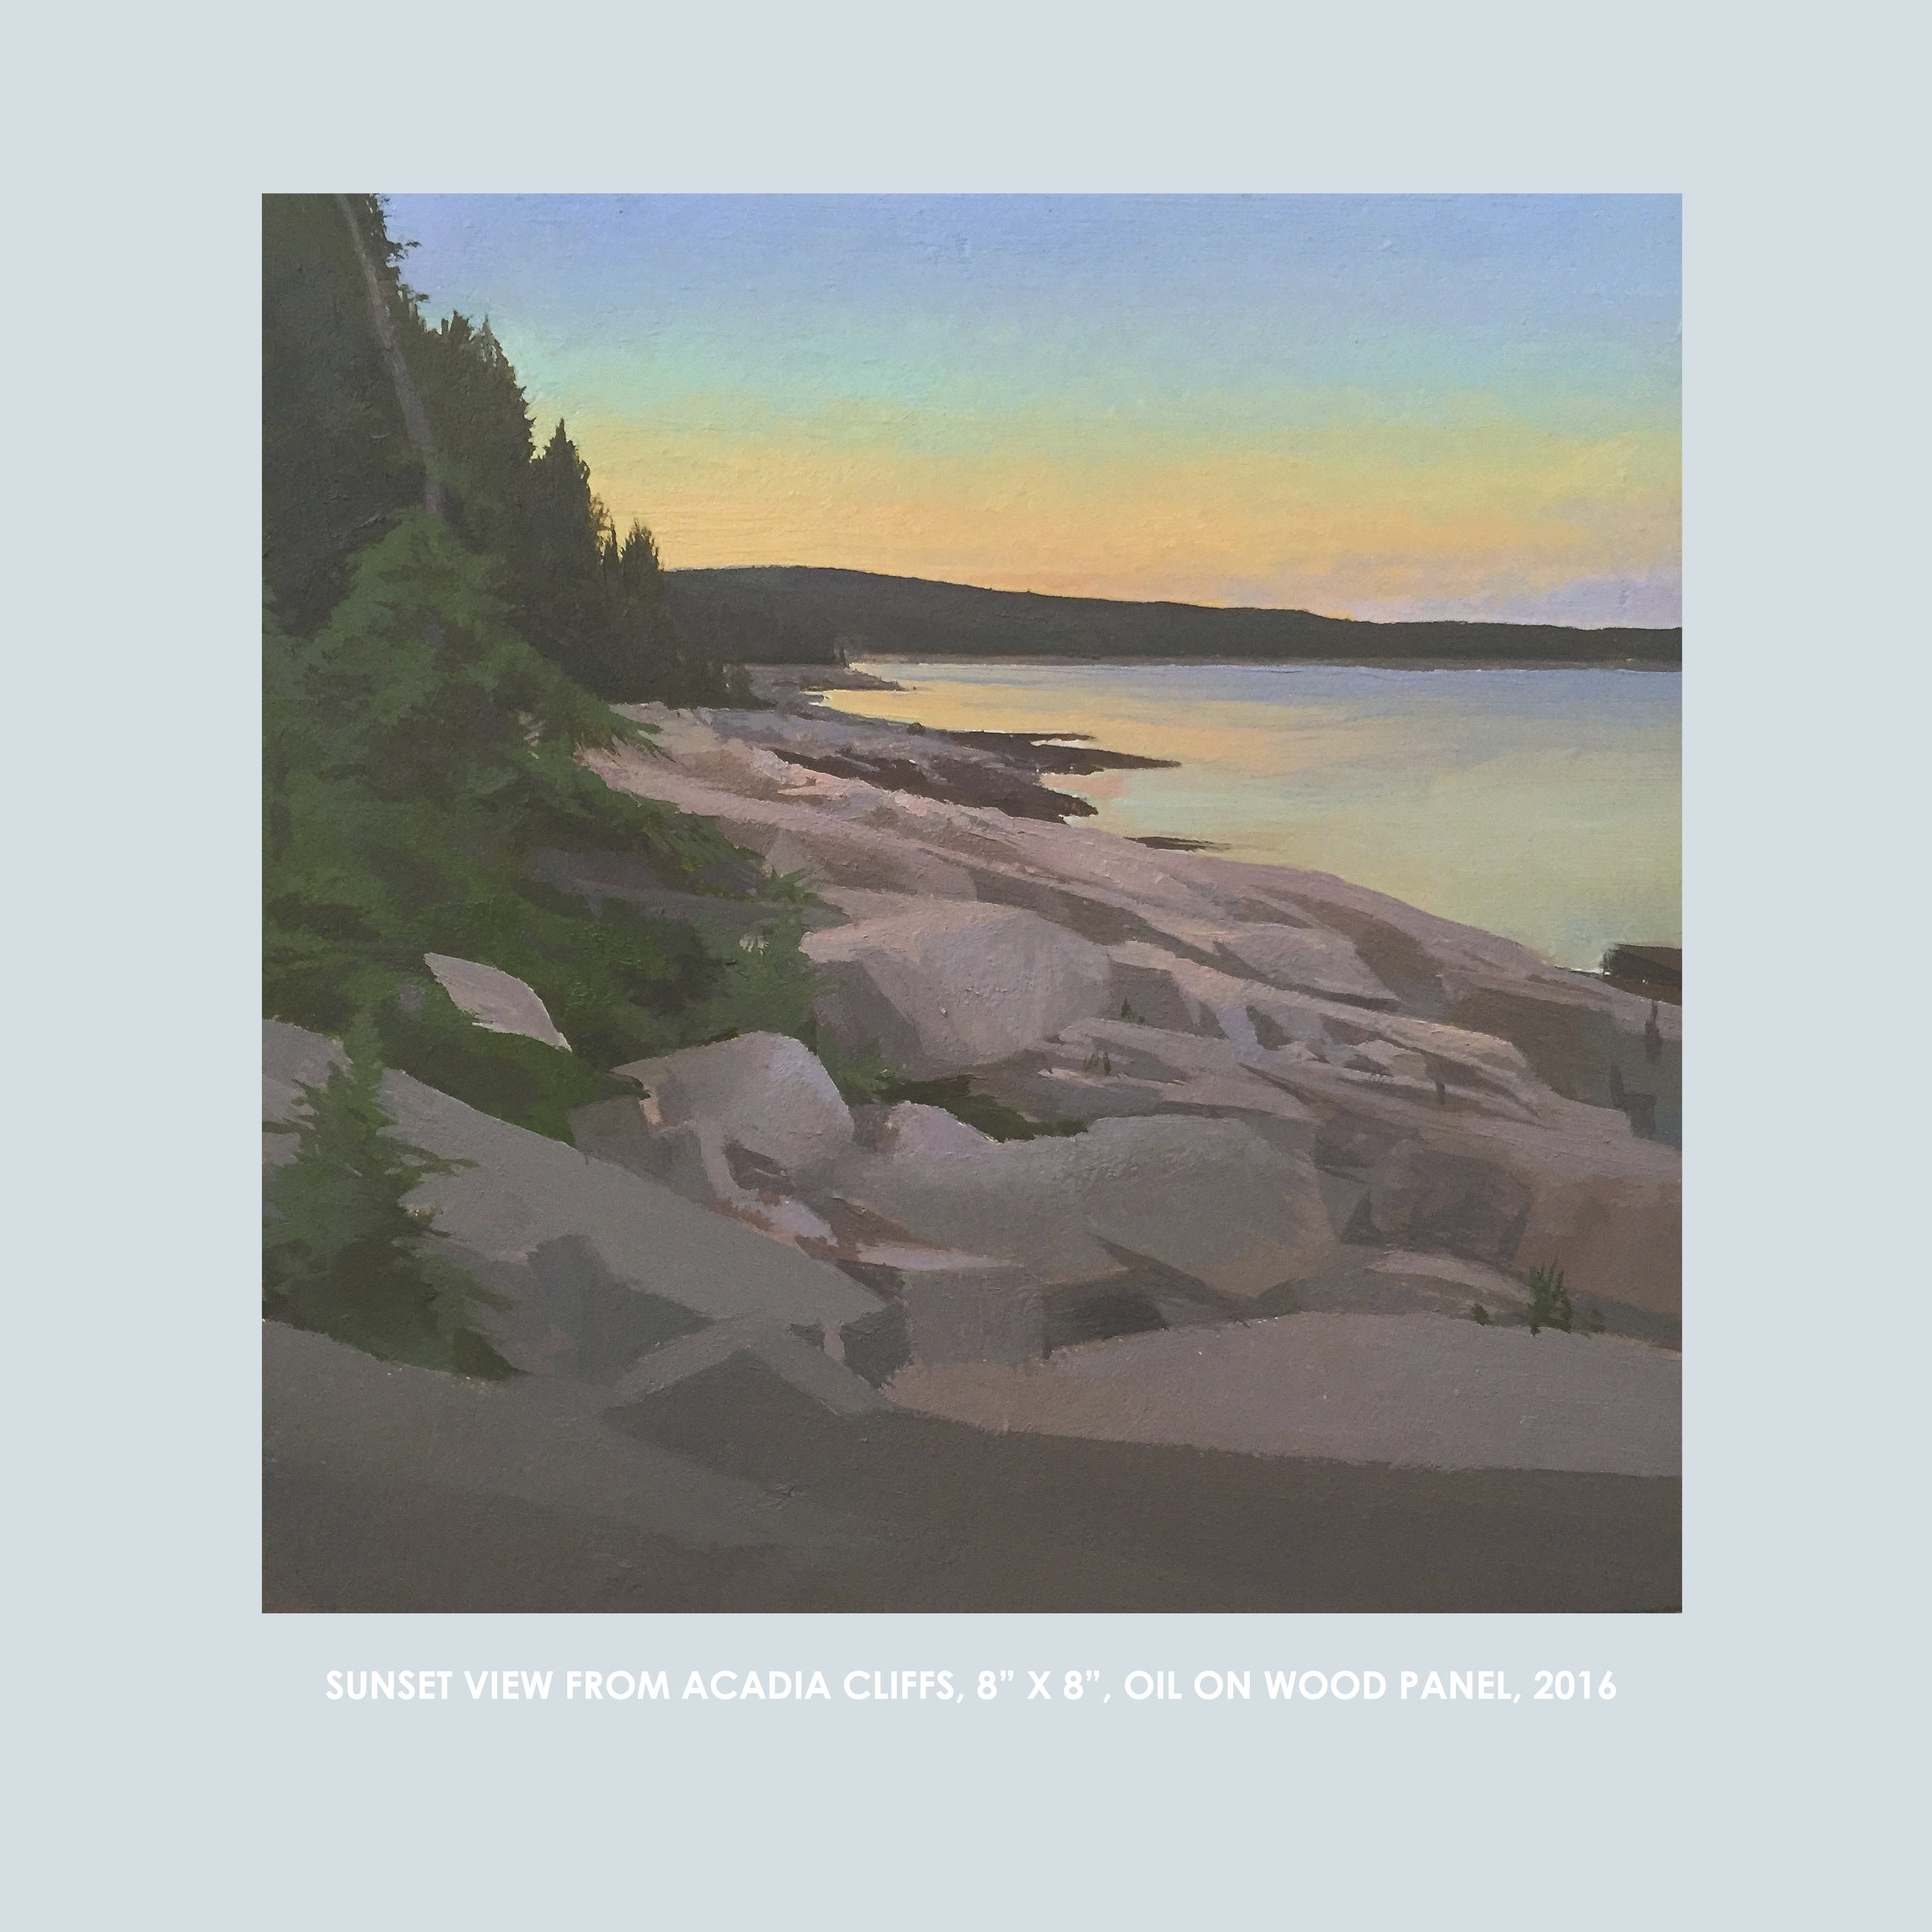 """Copy of Christopher S. Tietjen painting: SunsetView from Acadia Cliffs, 8x8"""", Oil on Wood Panel, 2016"""